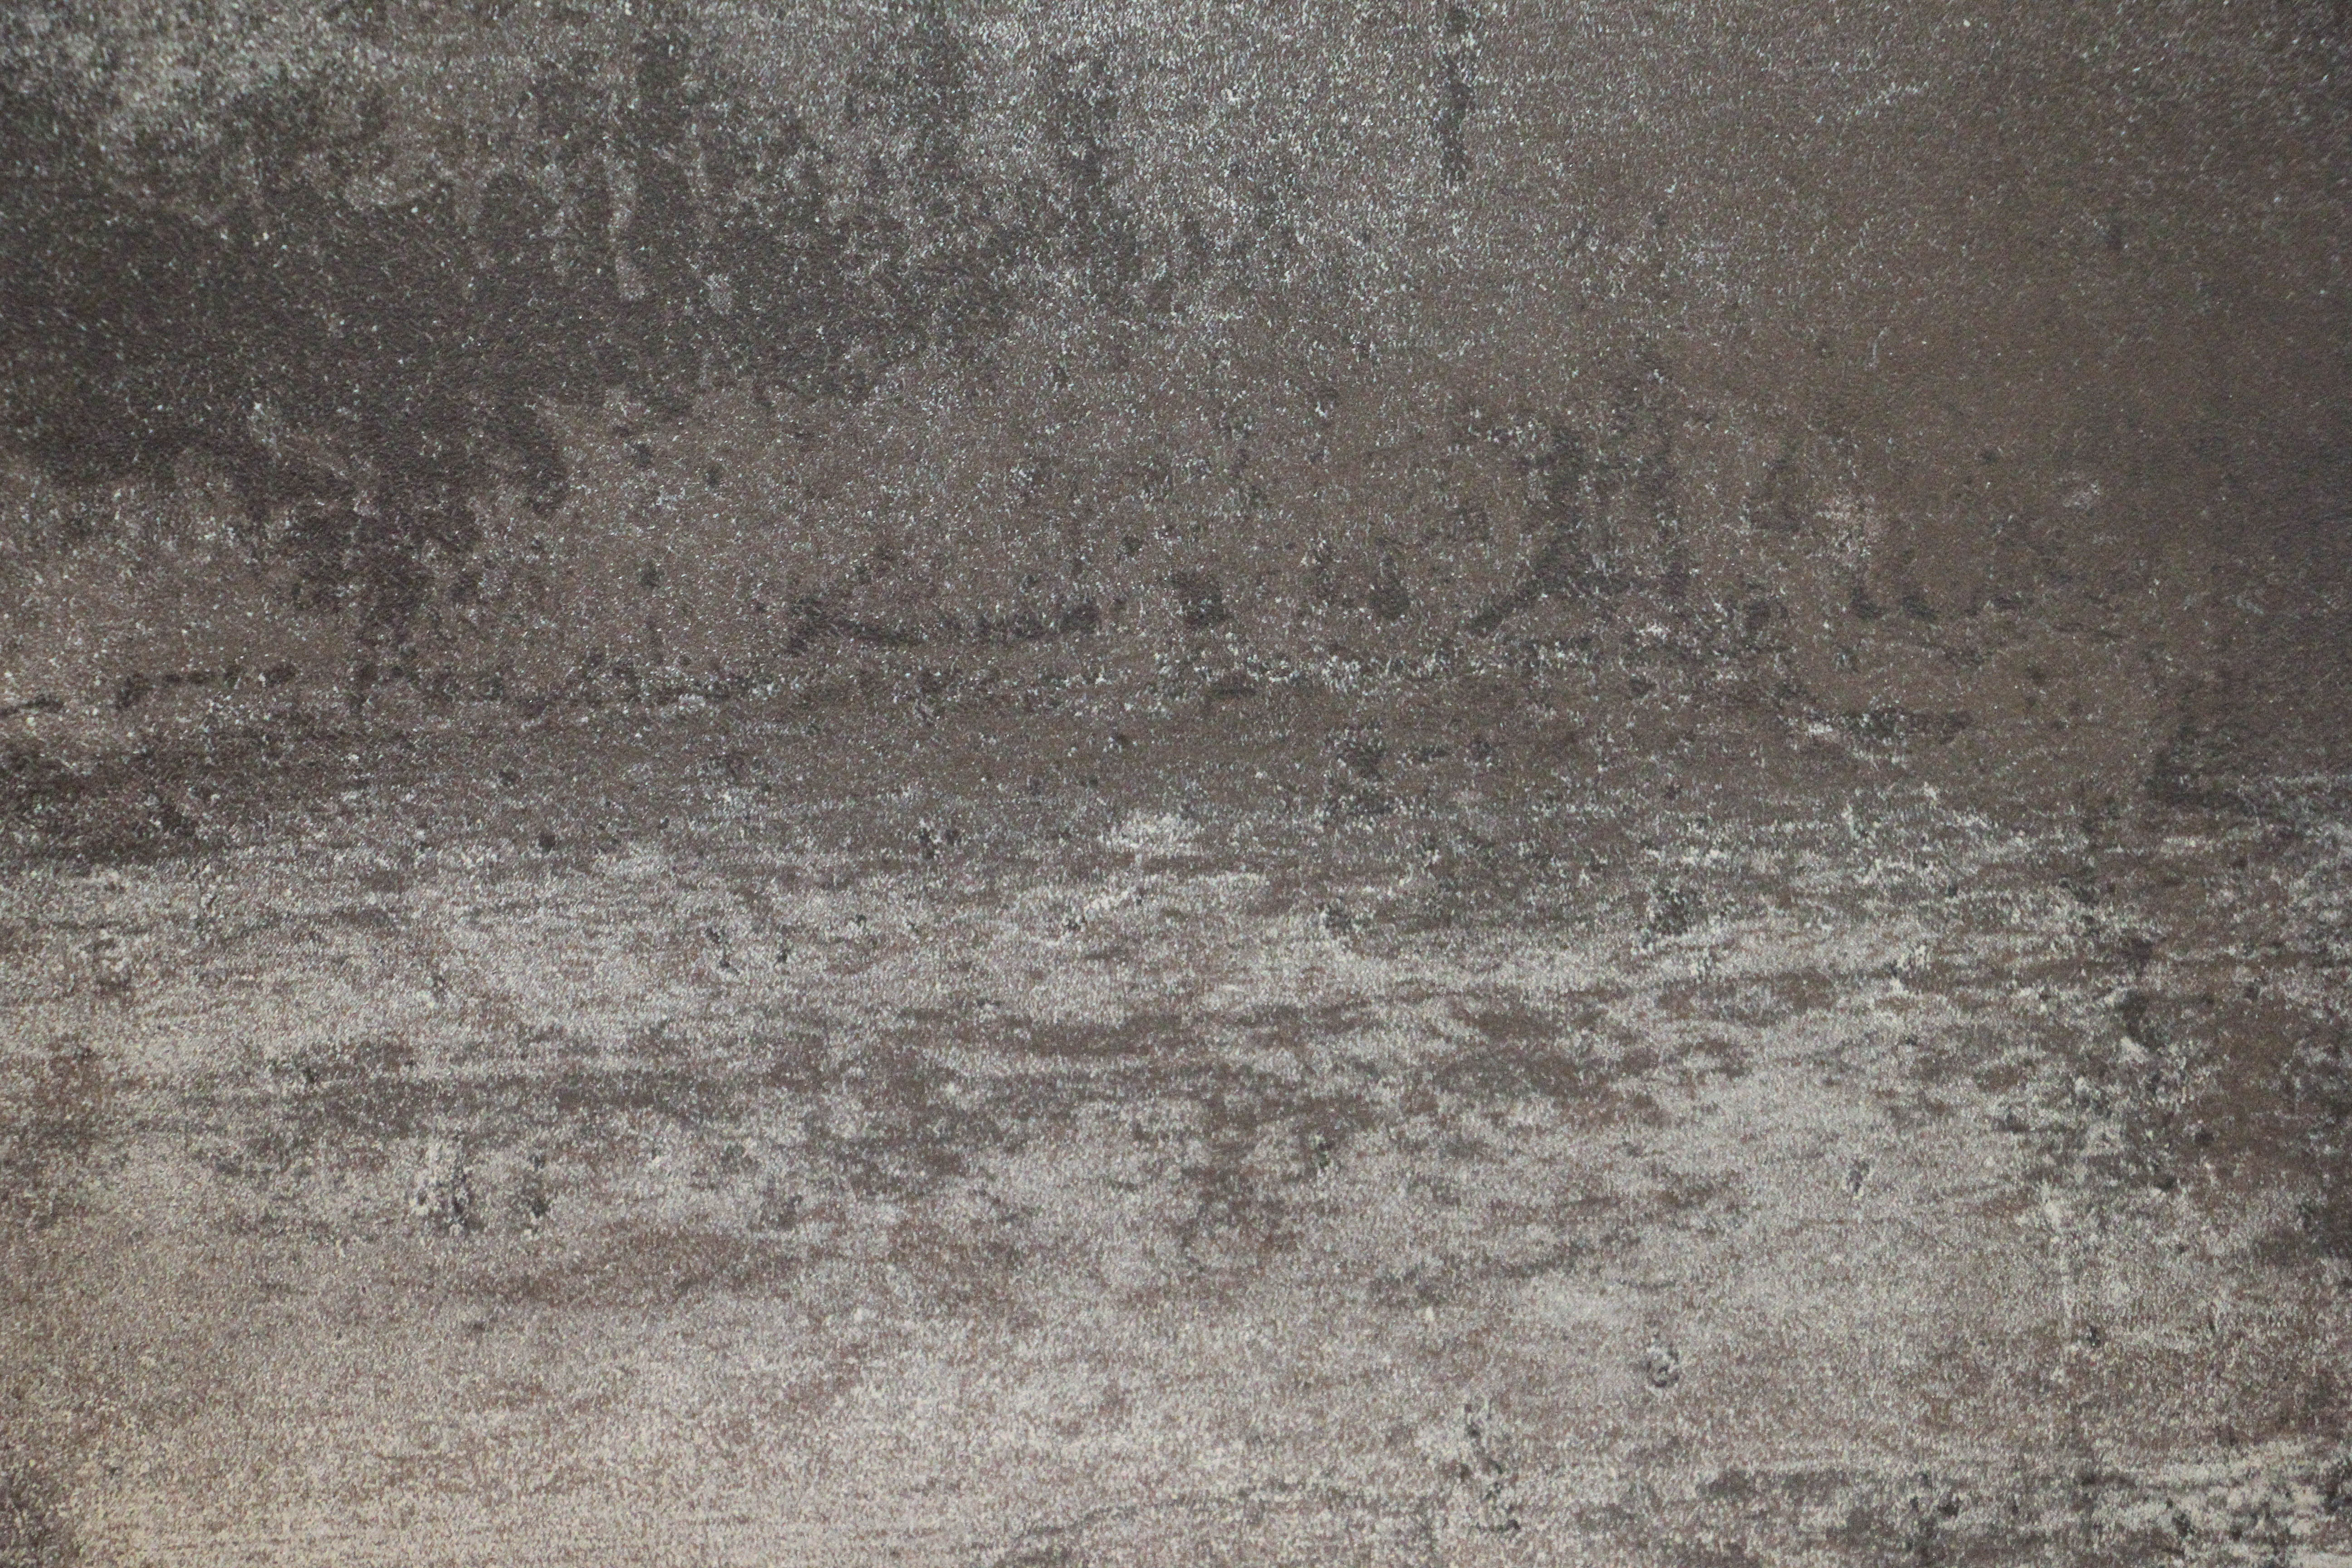 grey grunge texture rough concrete floor dirty stock photo surface ...